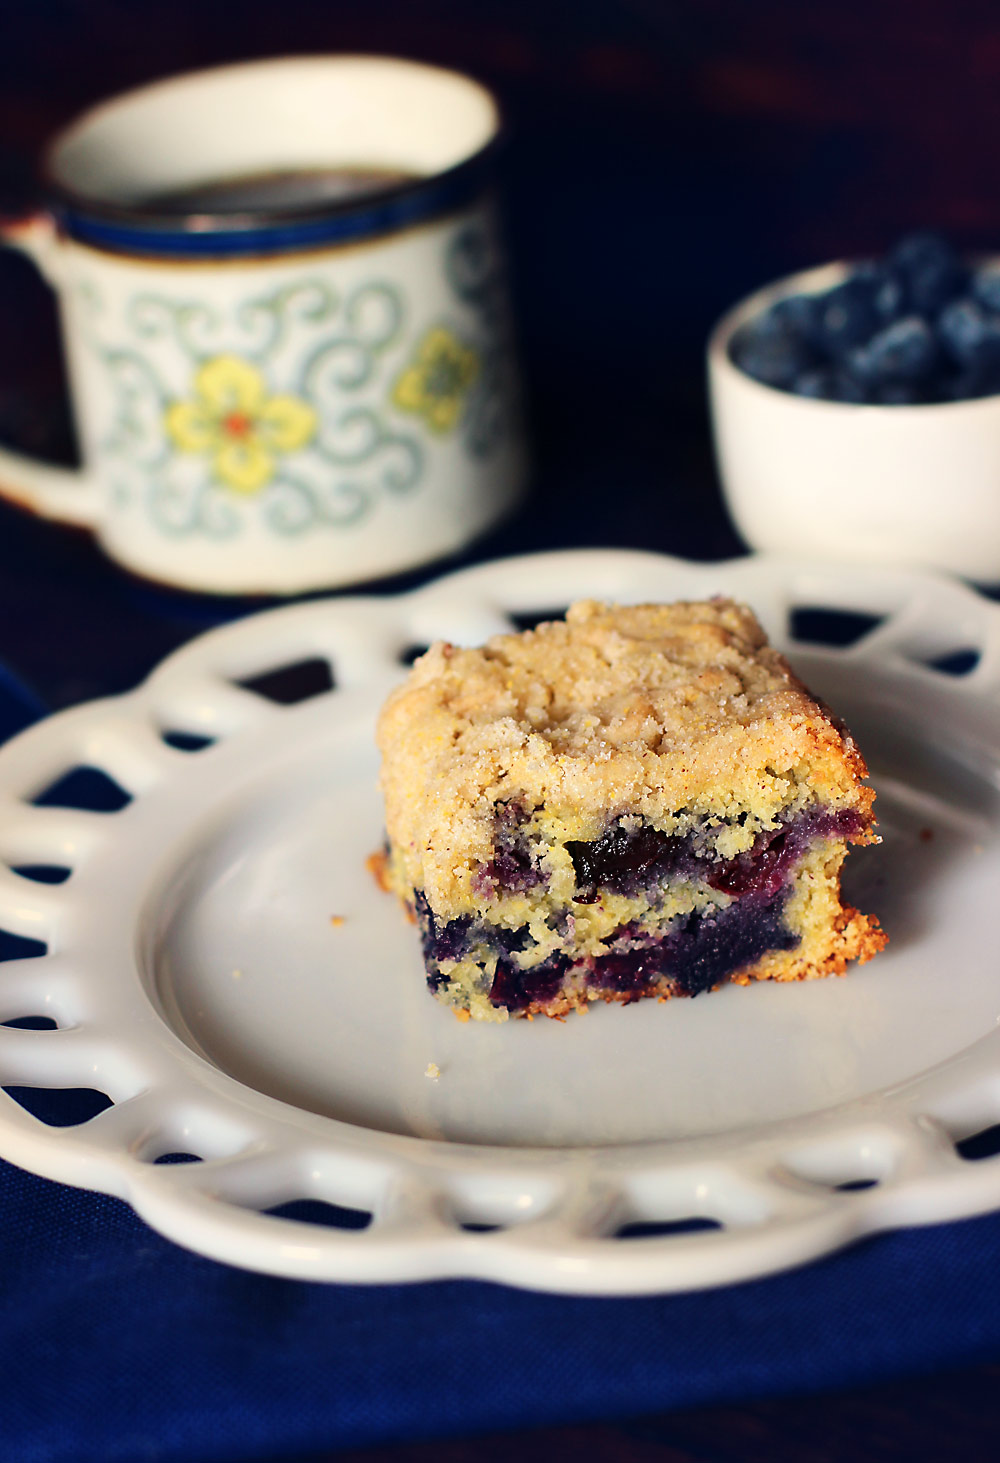 Blueberry-Cornmeal-Butter-Cake